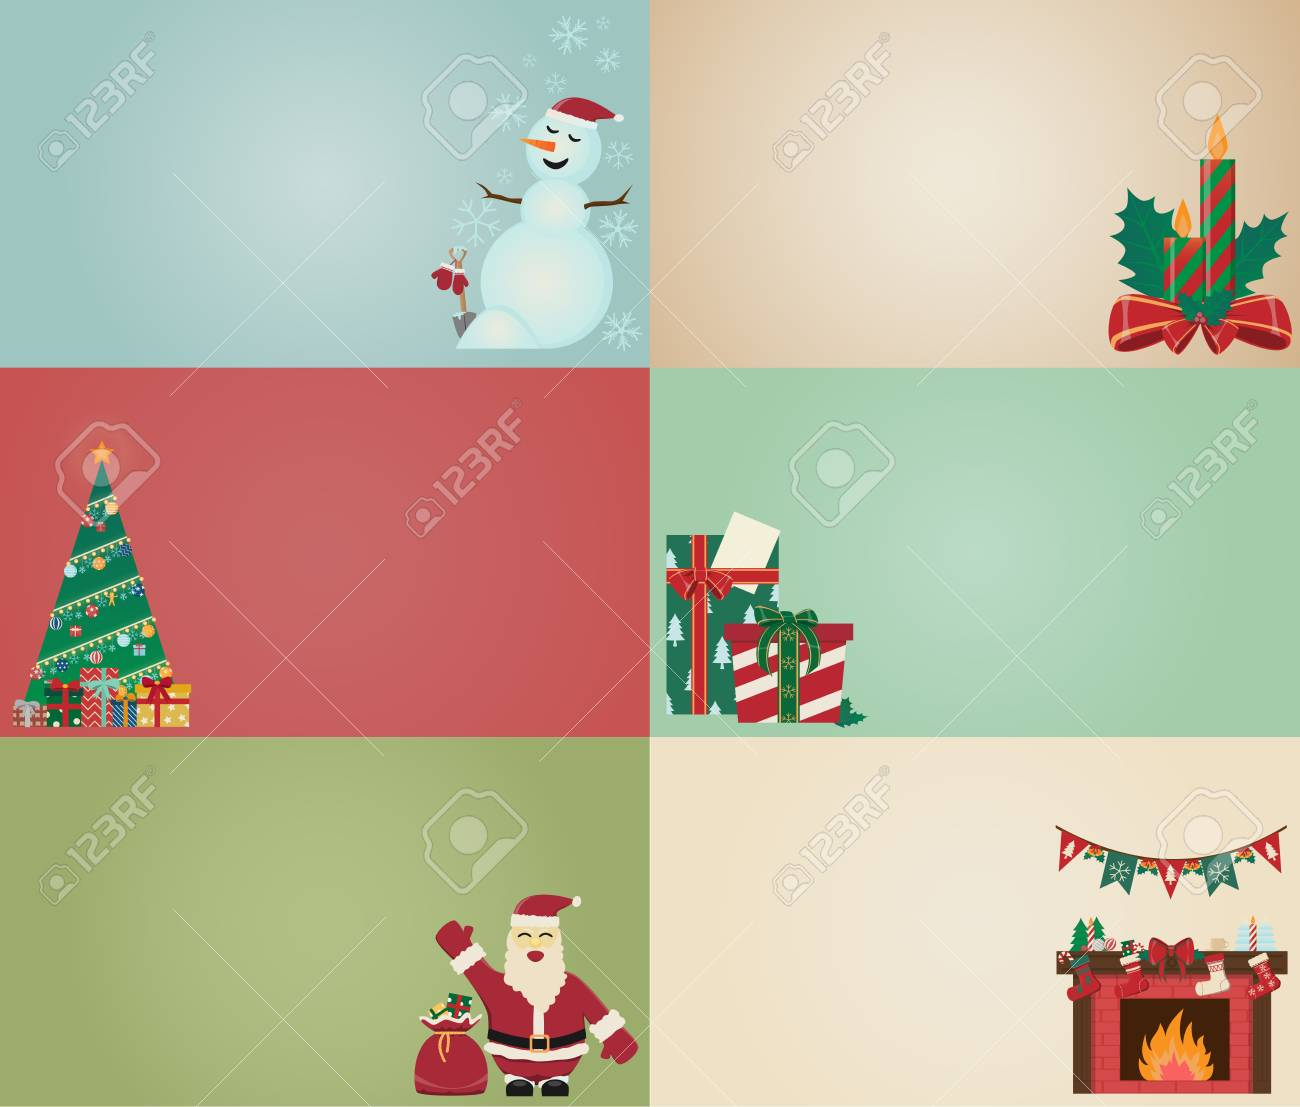 Old Christmas Card Style Old Cartoon Card Royalty Free Cliparts